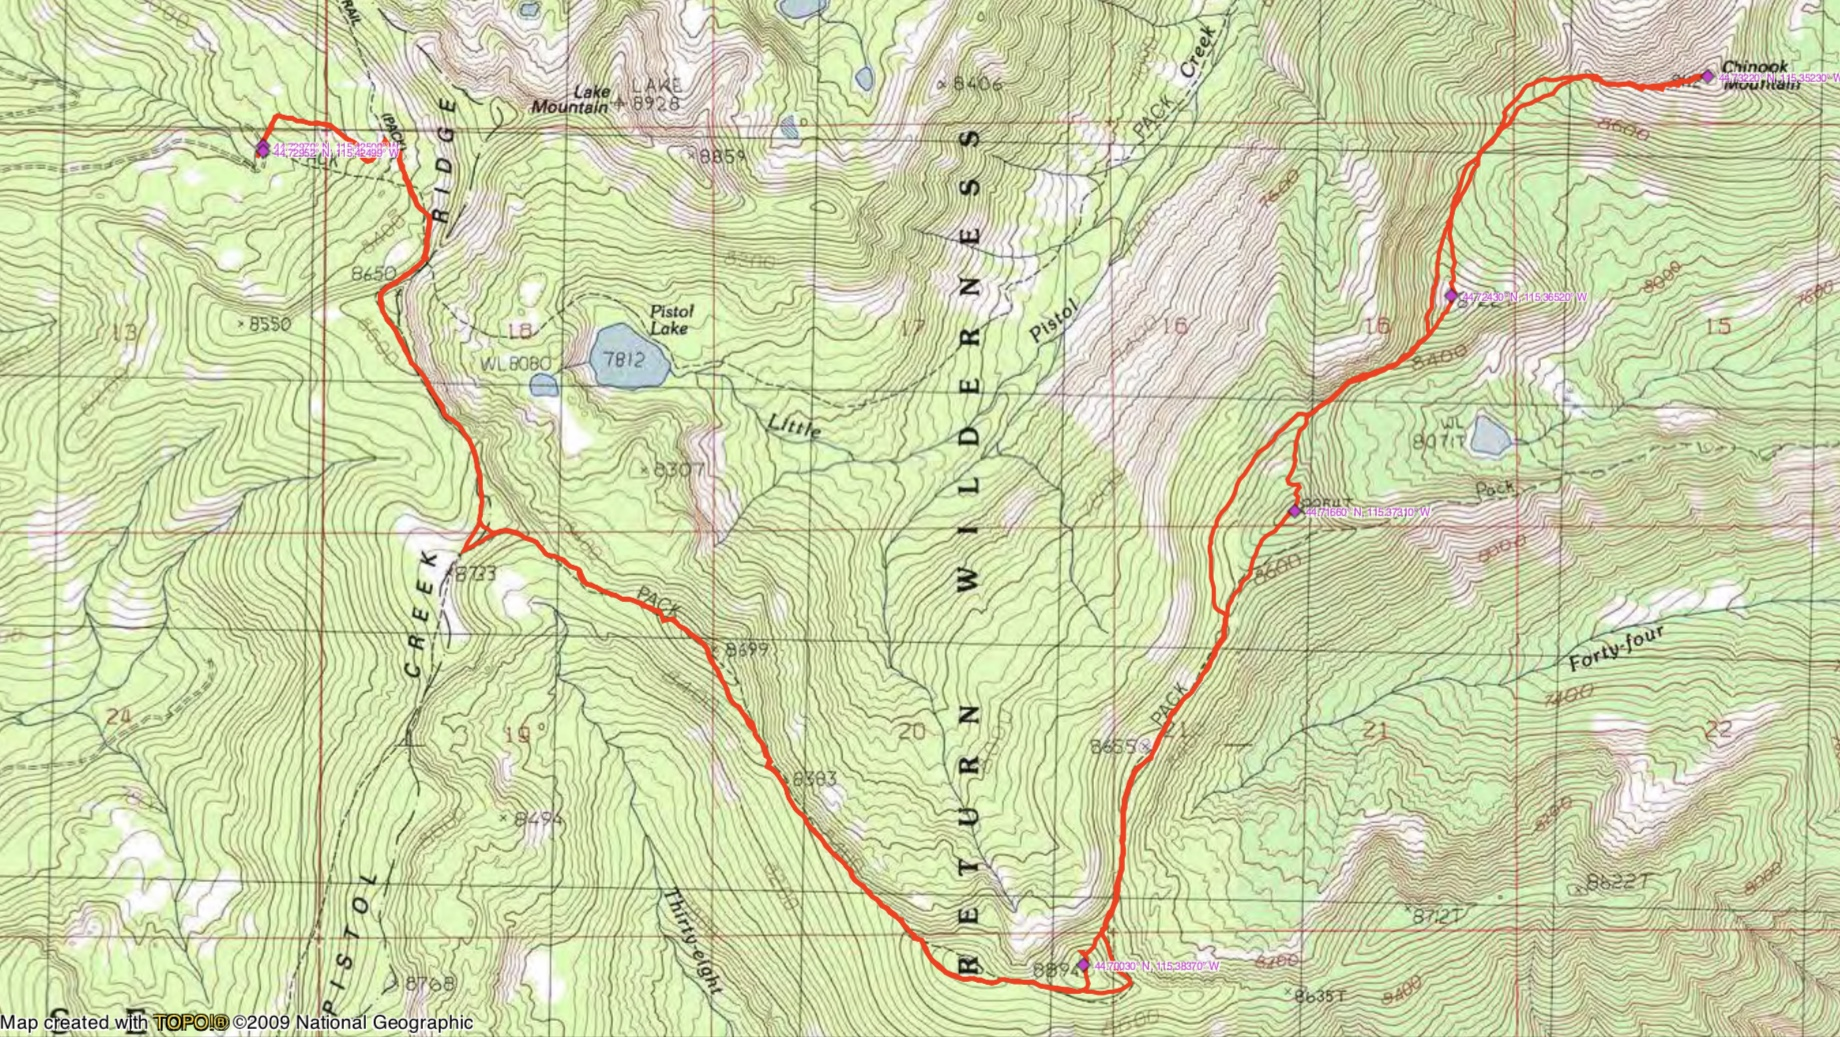 John Platt's GPS track of the traverse to Chinook Mountain.